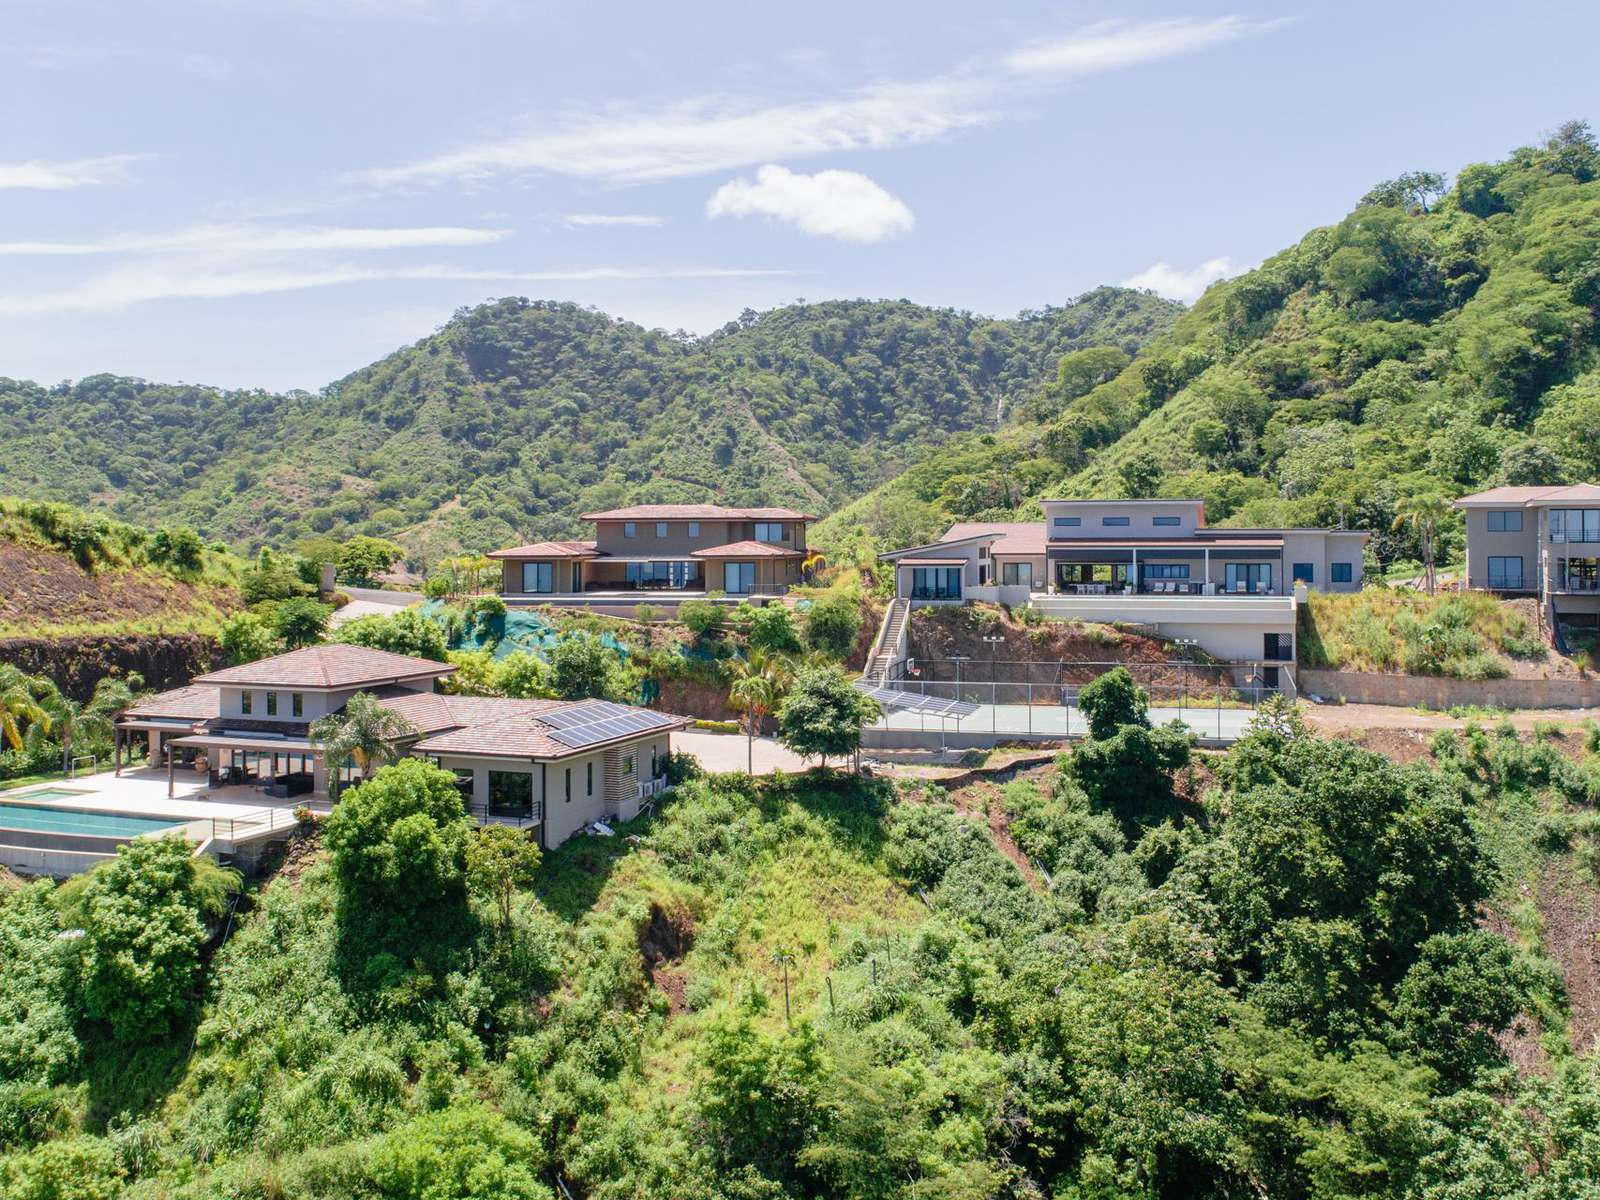 Mar Vista community and view of Casa Paraiso, simply stunning